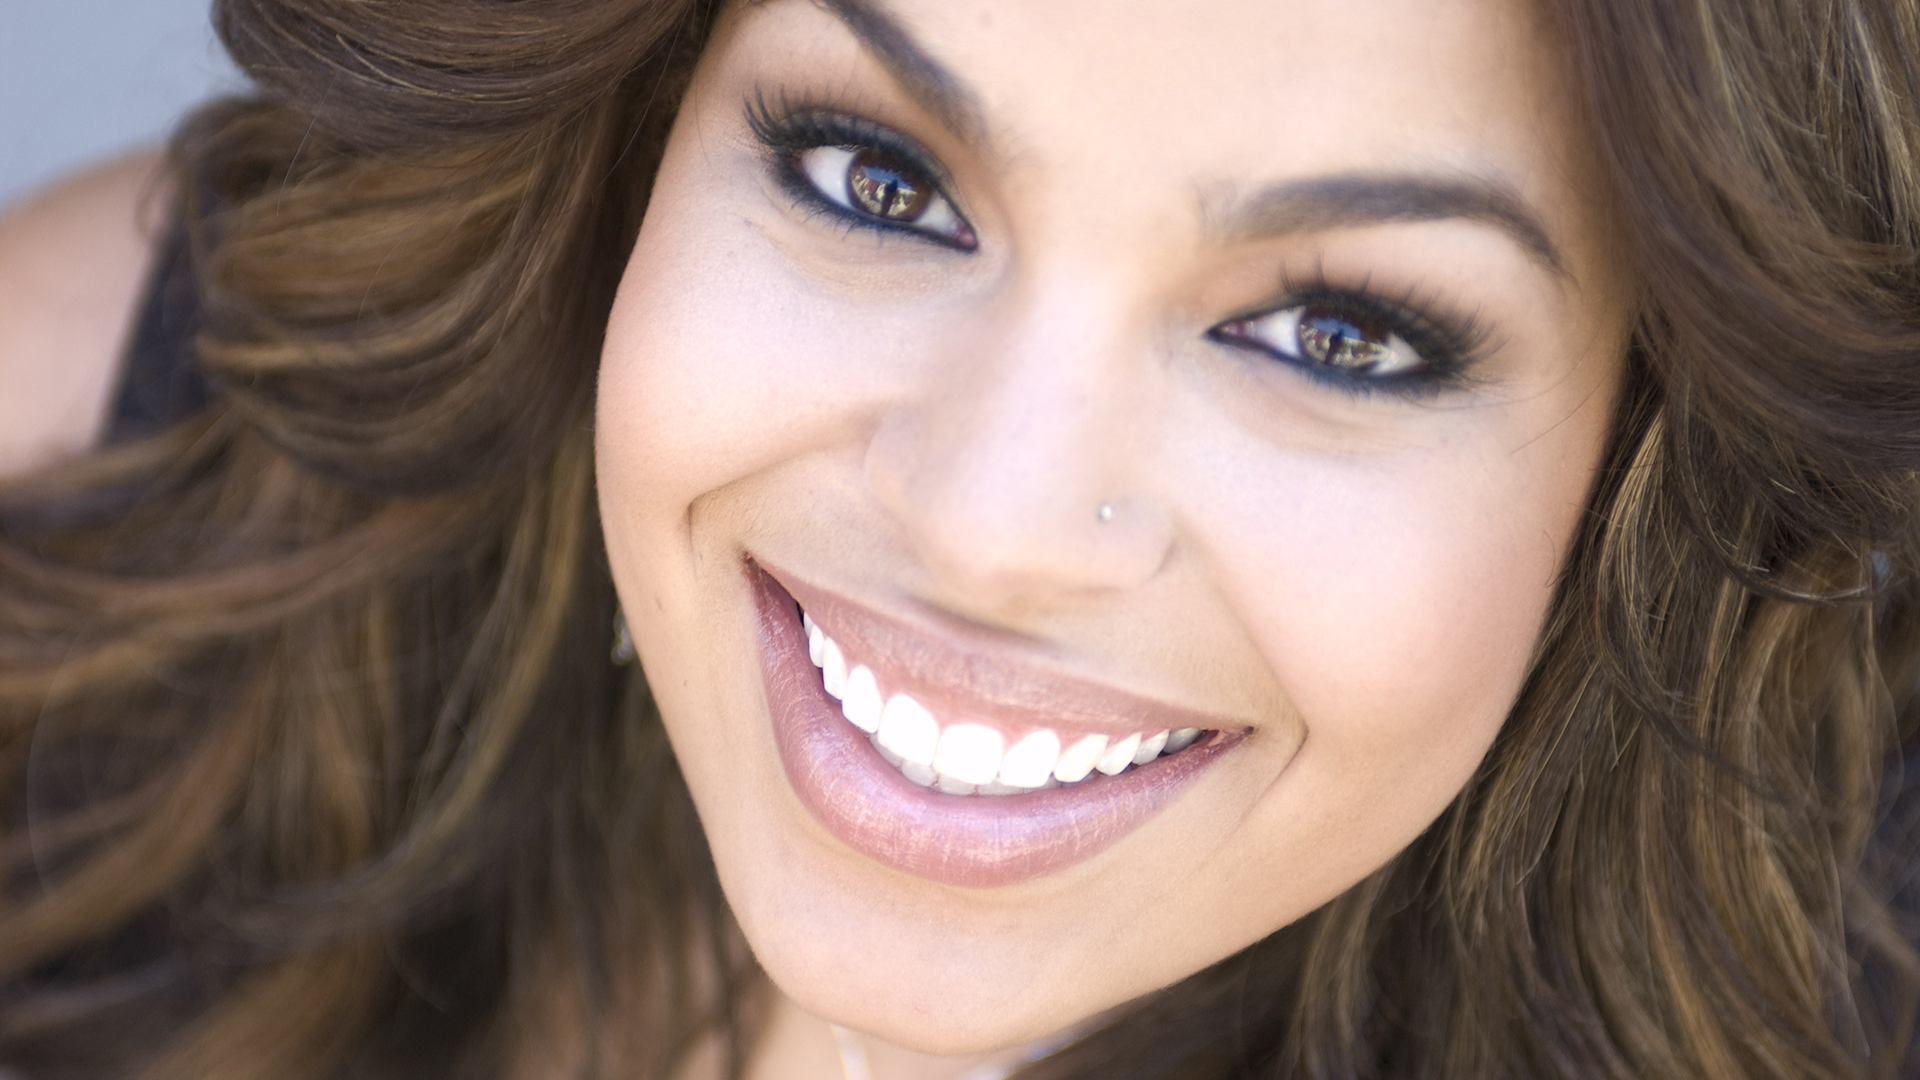 jordin sparks widescreen desktop wallpaper 1289